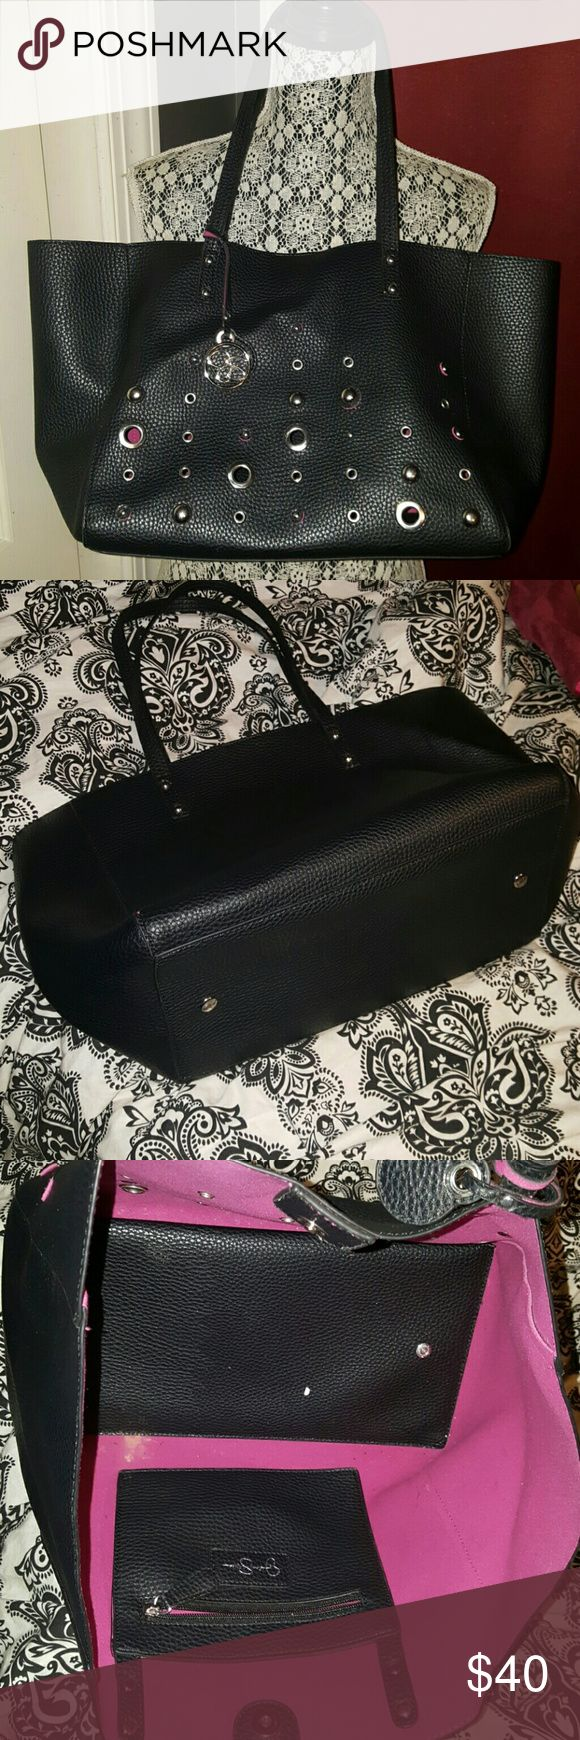 Jessica Simpson black grommet studded large tote This is a fabulous Jessica Simpson black grommet silver studded large tote Satchel bag. It is pre-owned I used it once on a weekend trip. It is in perfect condition. Measures 11x13x7 paid &99 plus tax. Super cute Jessica Simpson Bags Totes